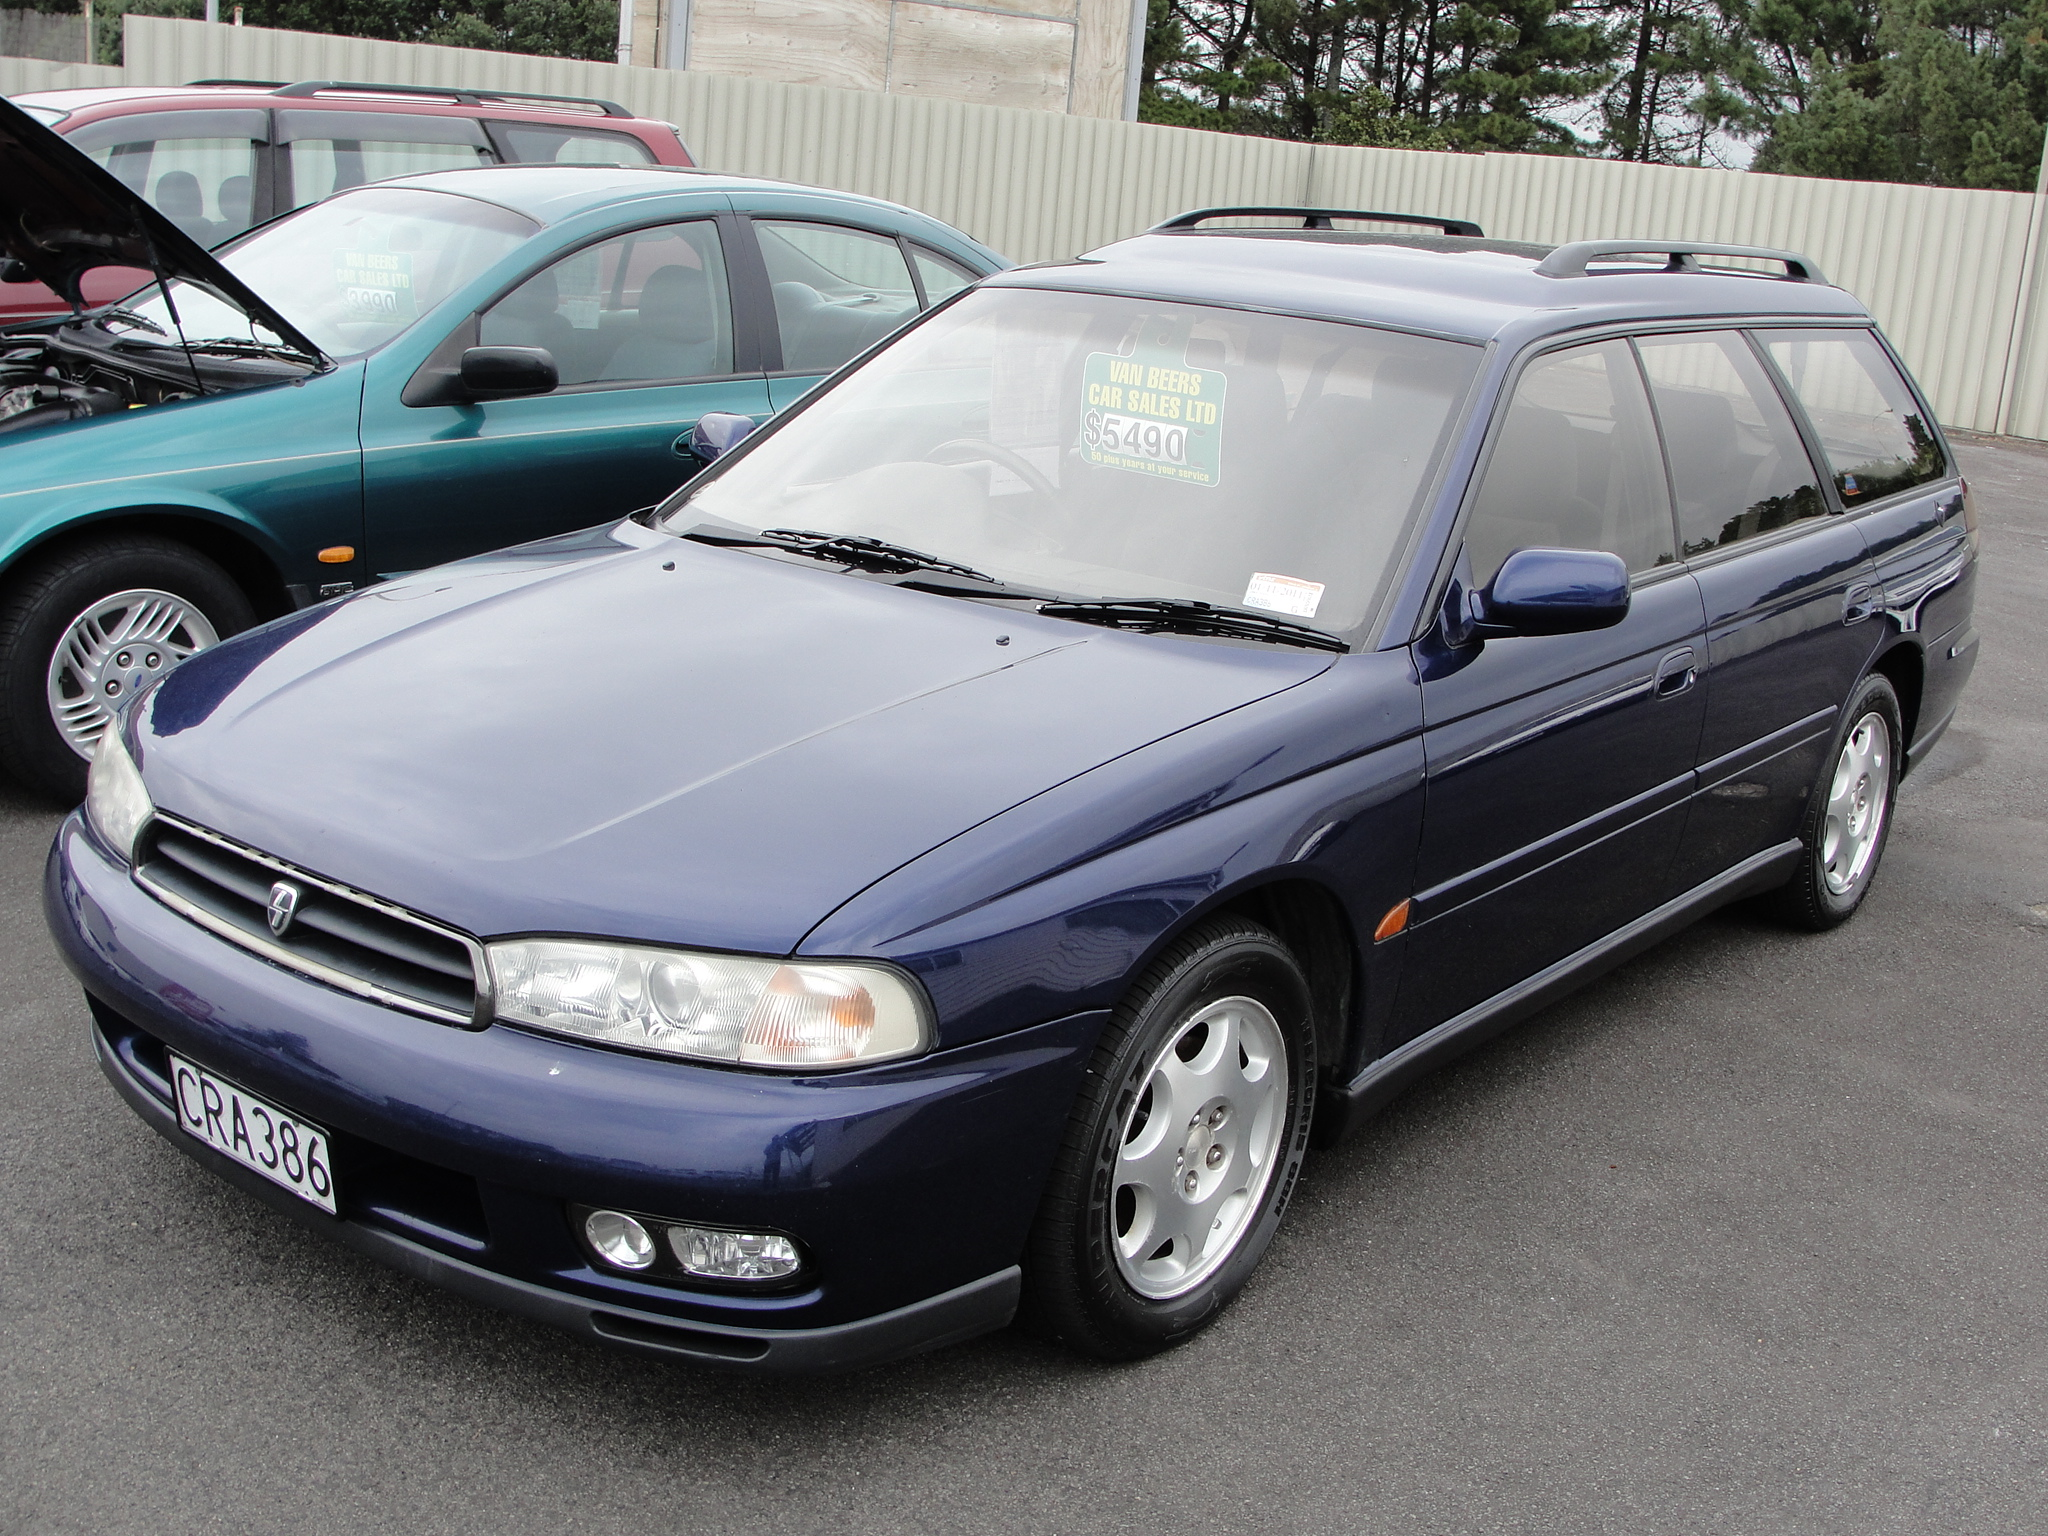 Subaru Legacy 250T Wagon photos.